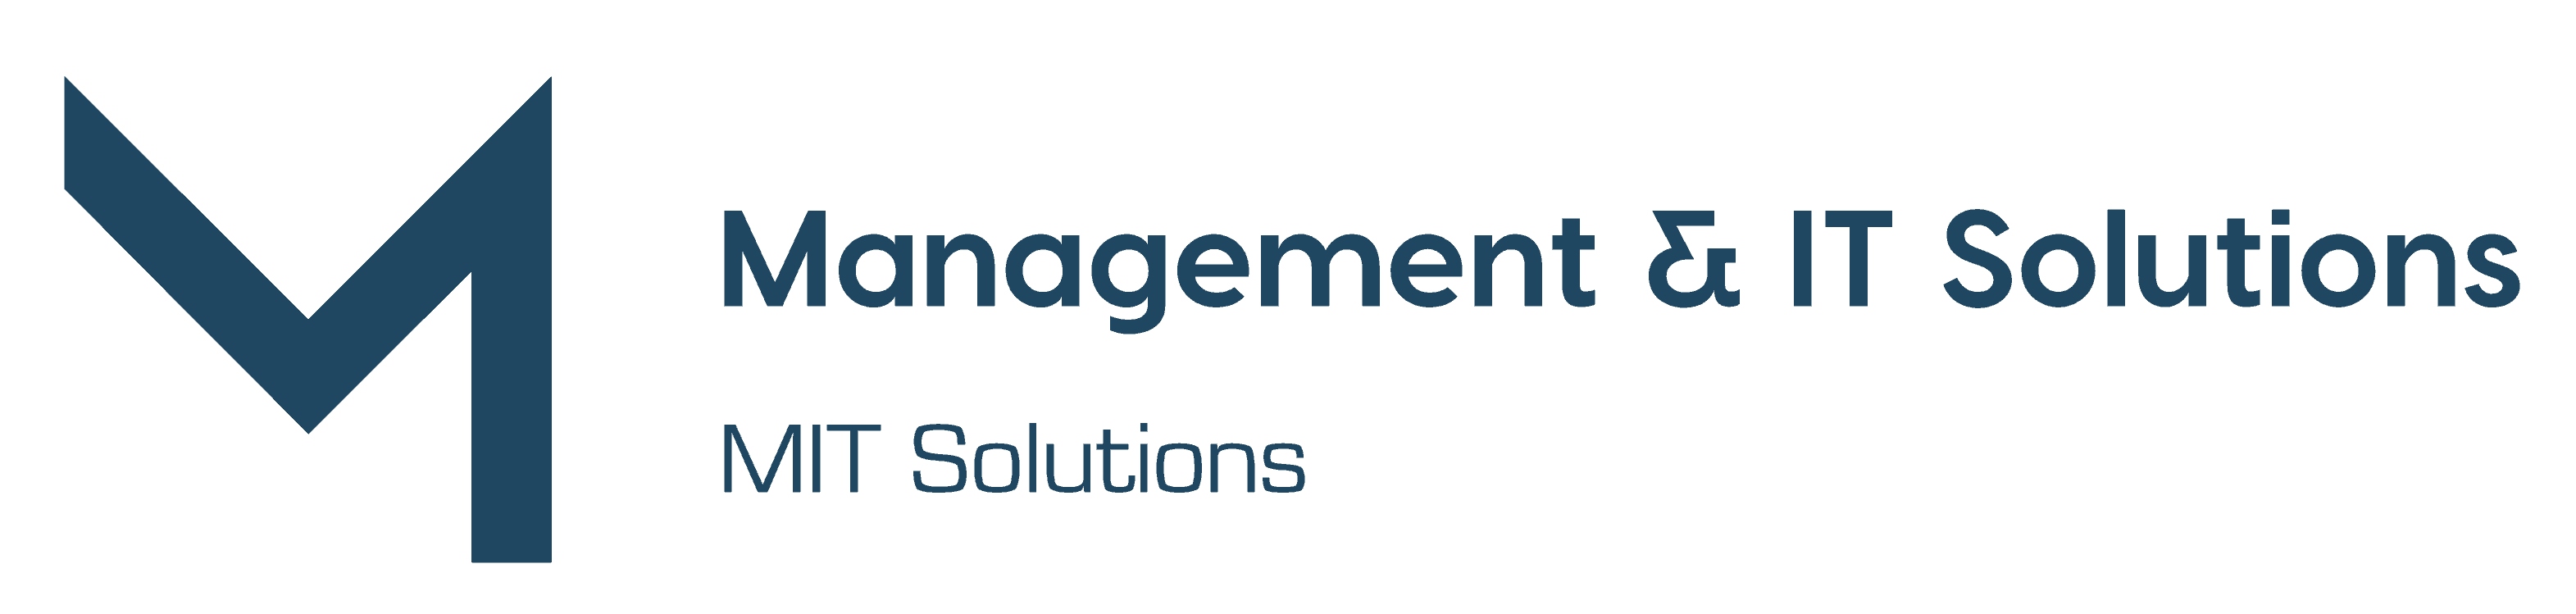 Management & IT Solutions bvba